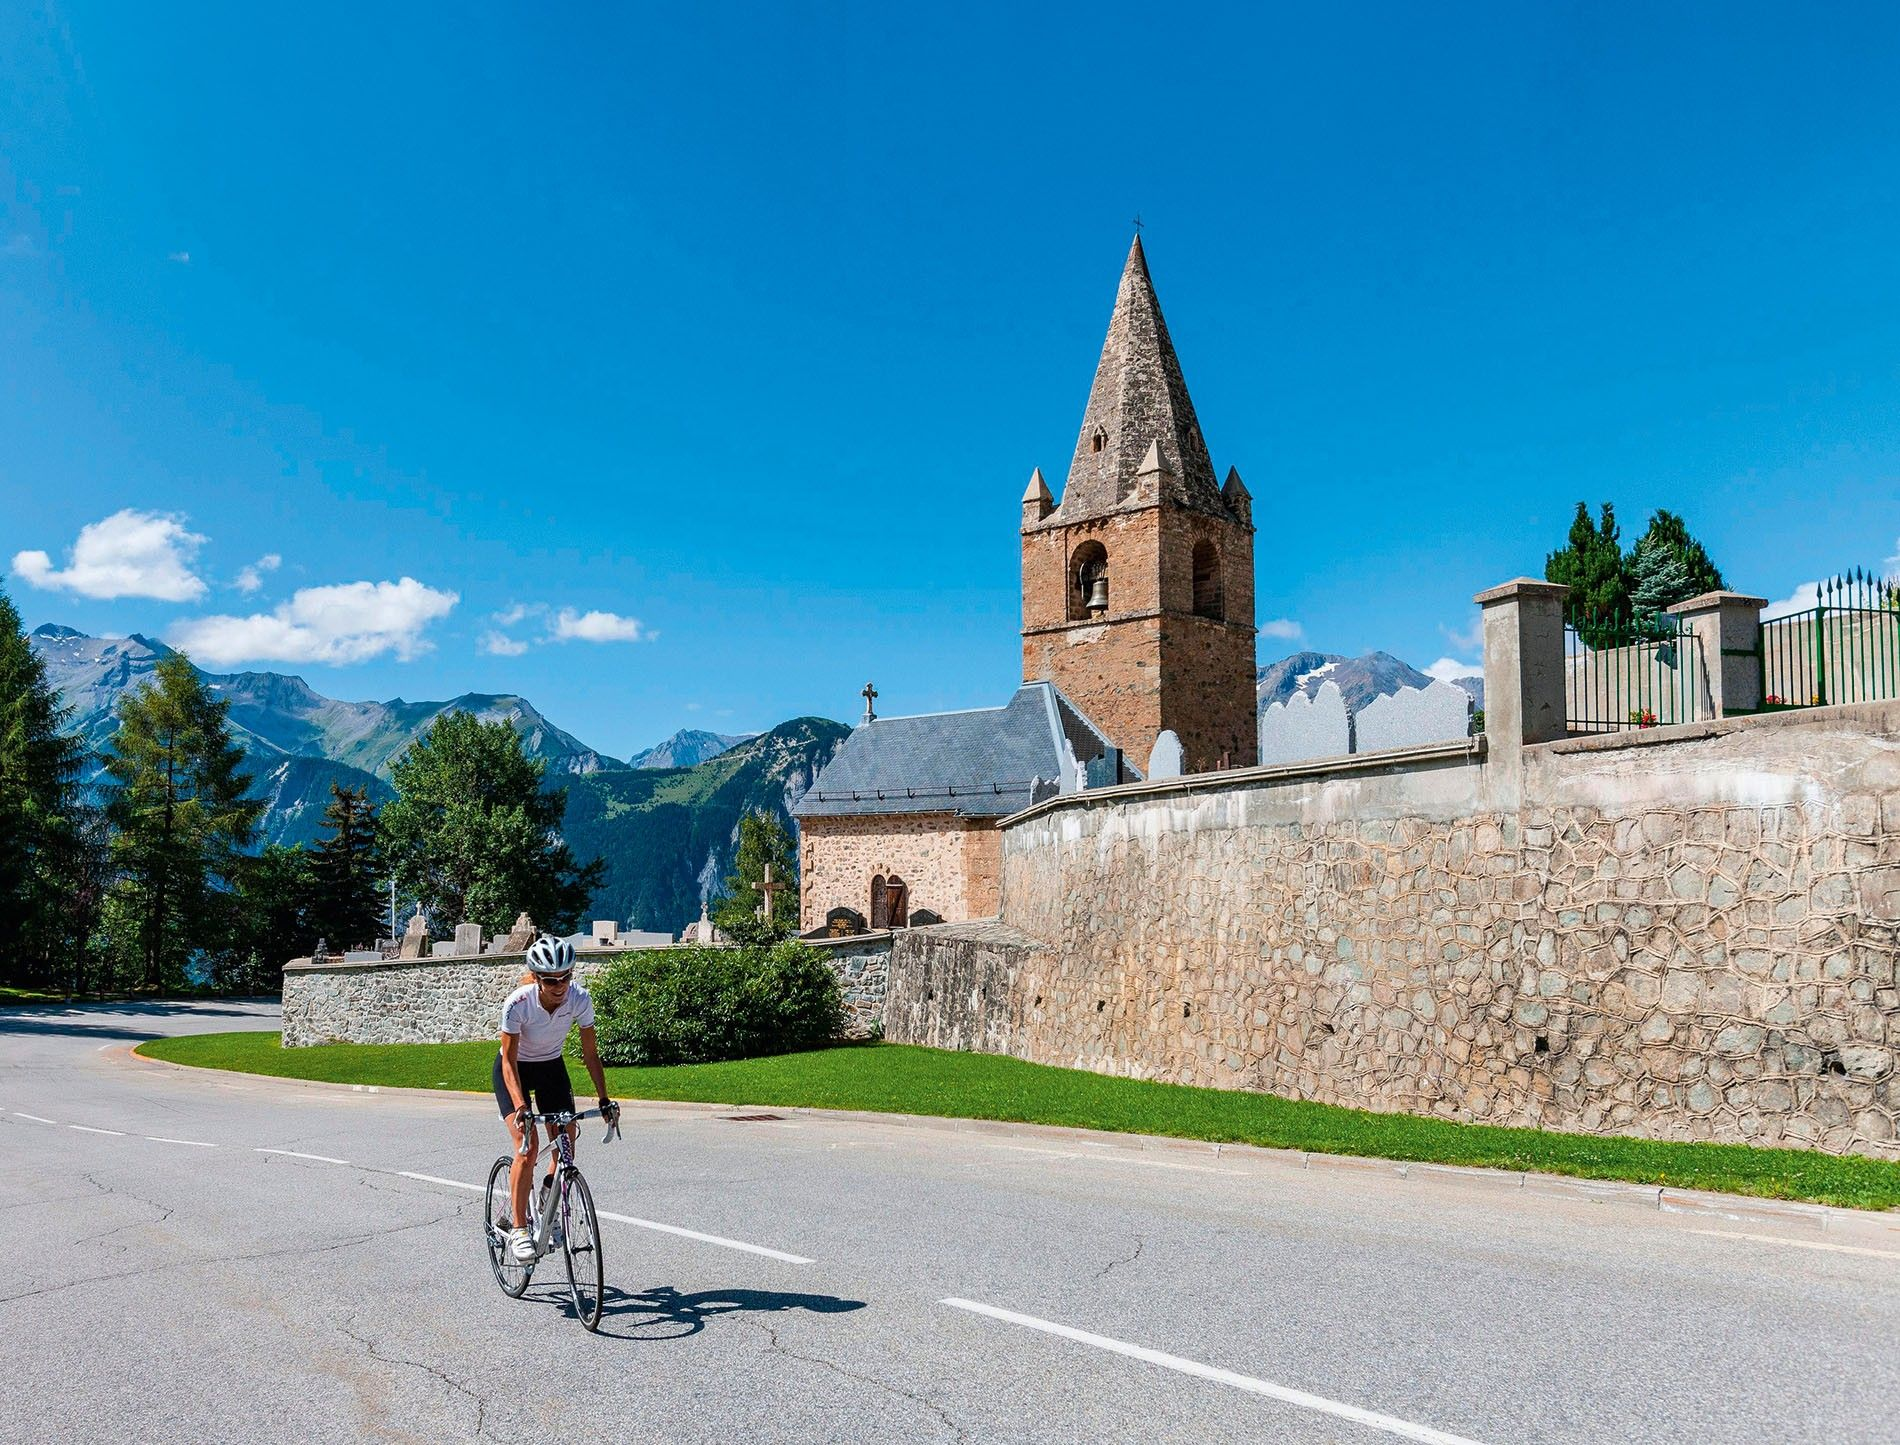 Tackling Alpe d'Huez, France by bike